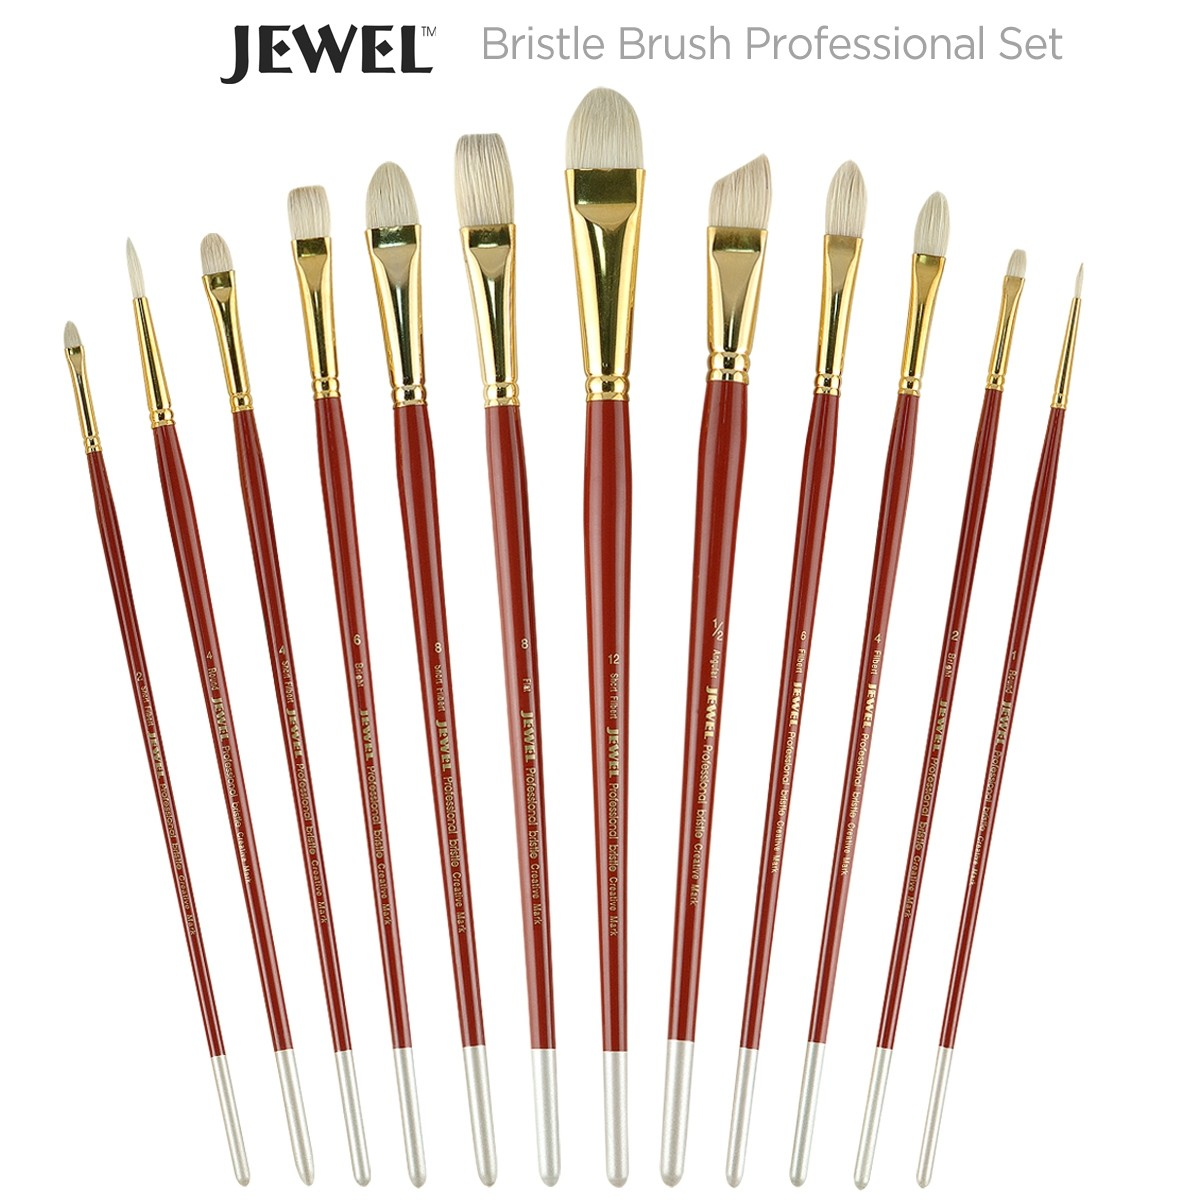 Jewel Professional Bristle Long Handle Brush Set